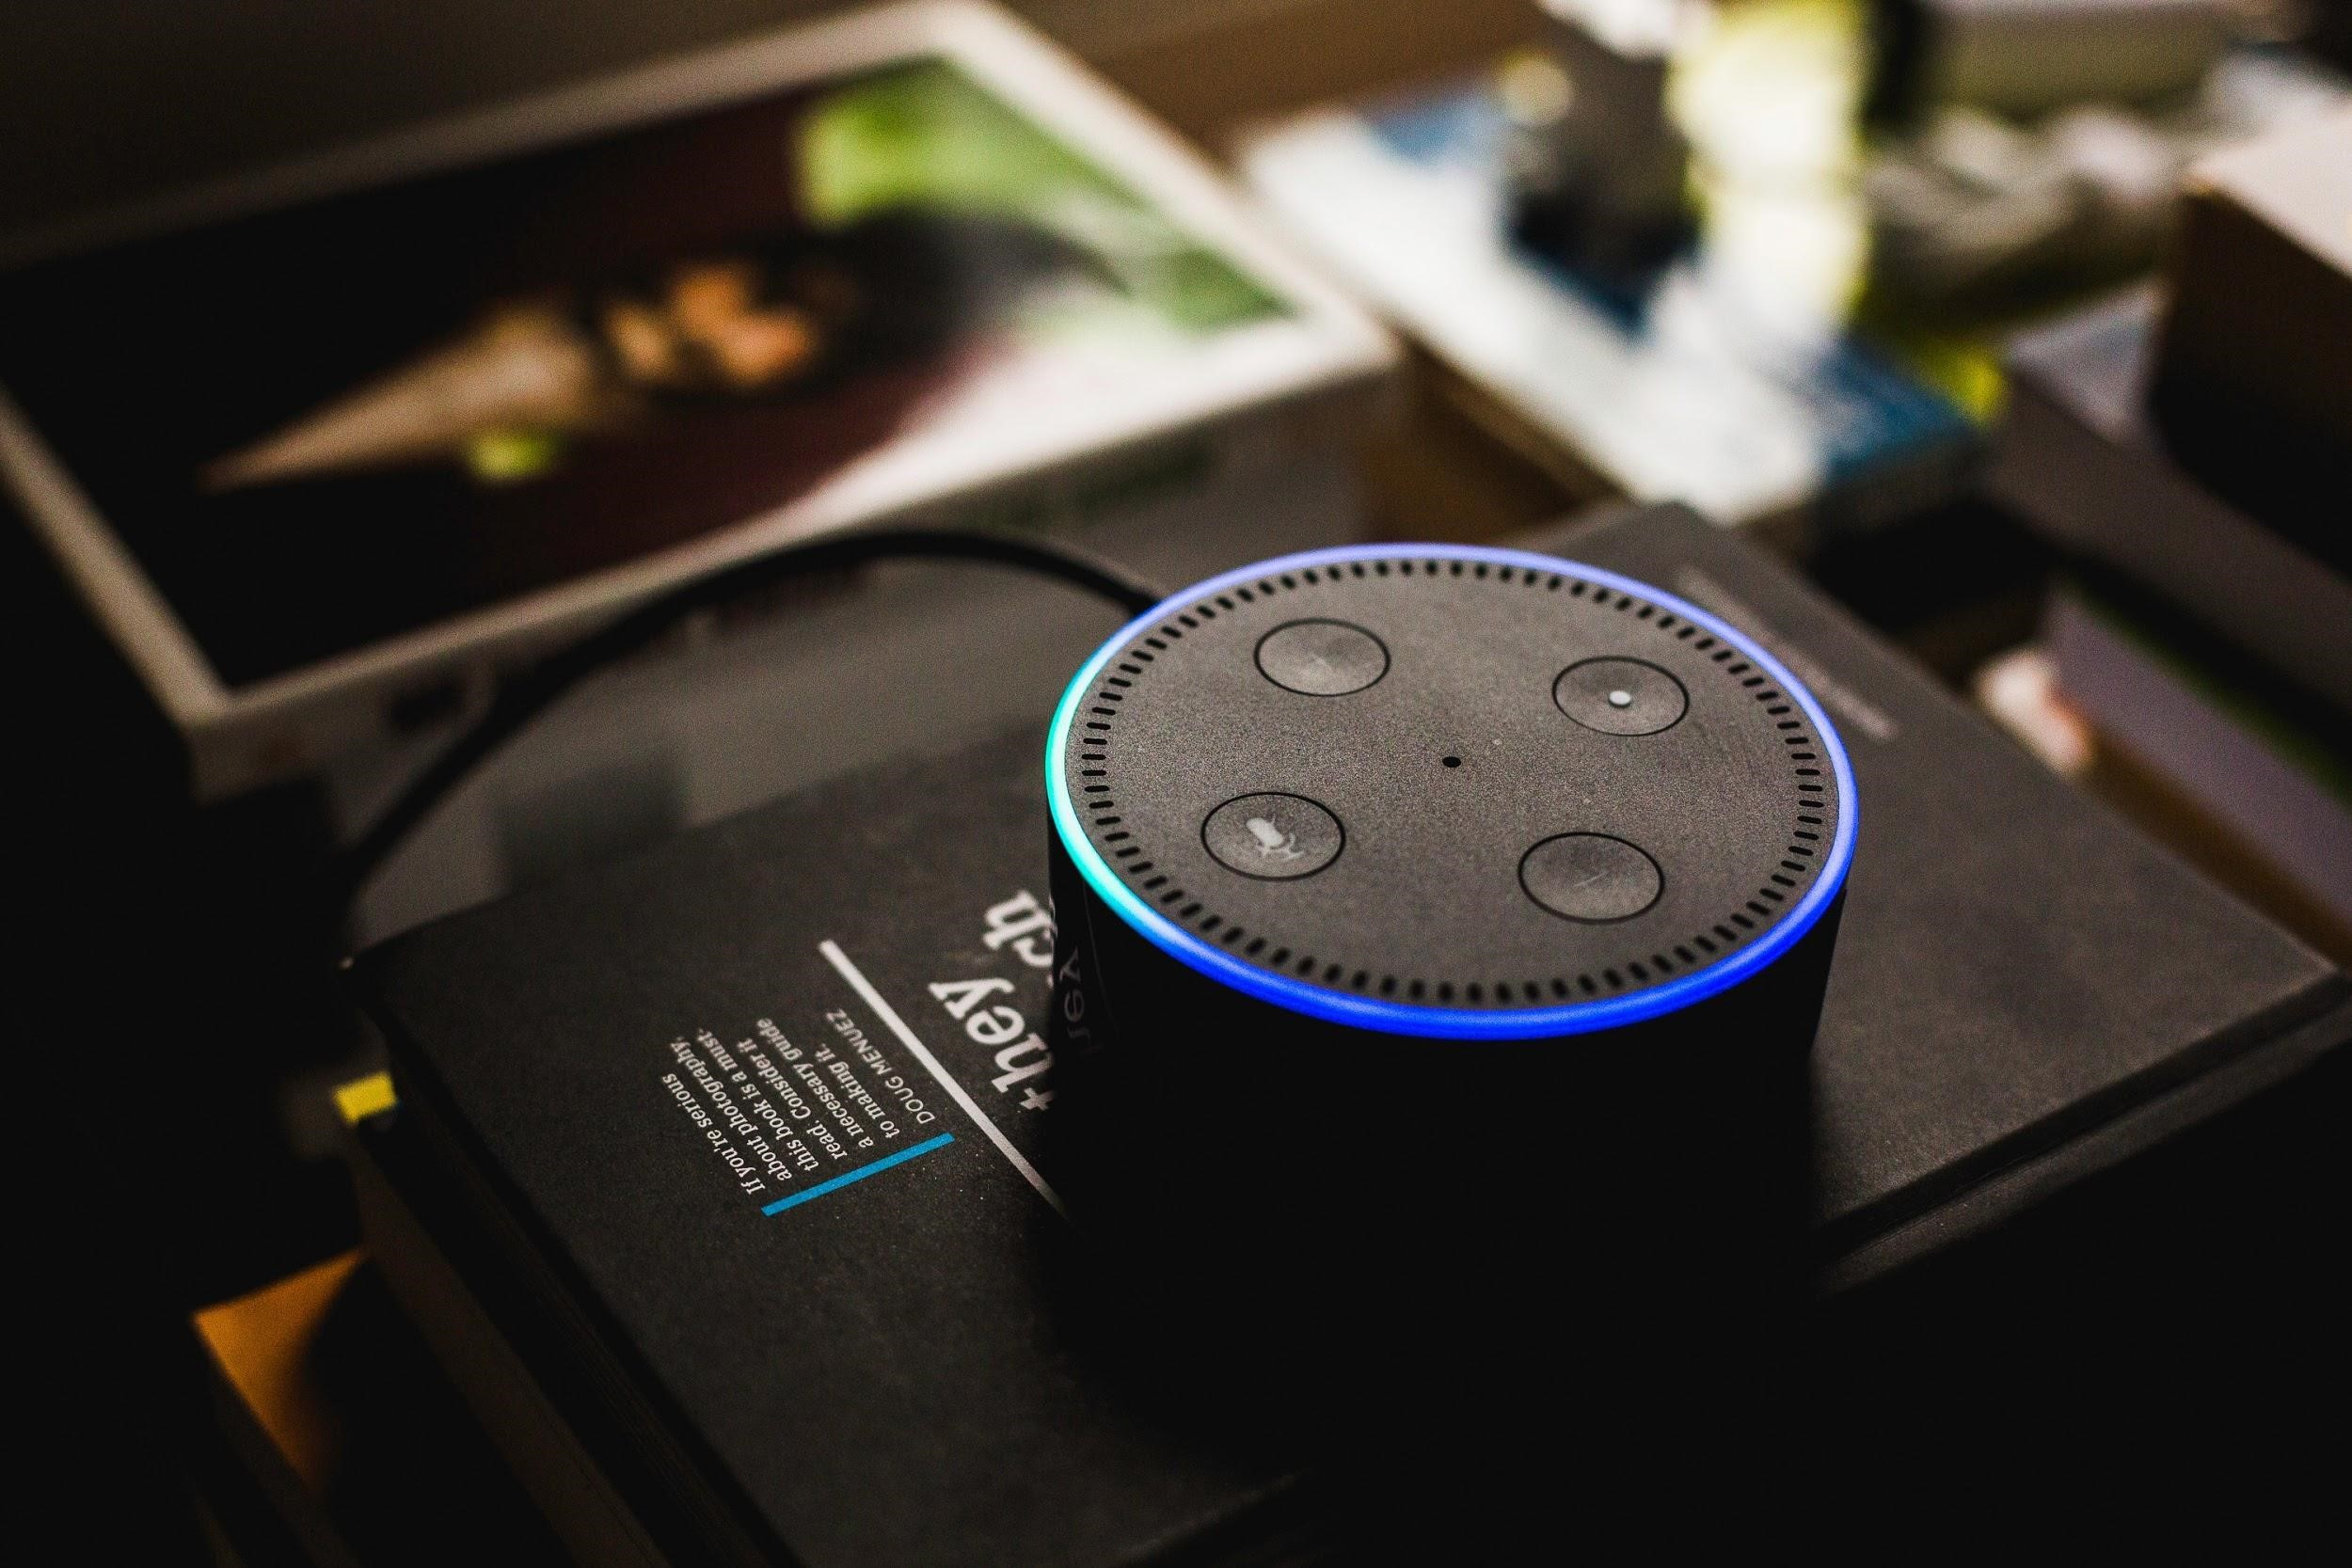 Amazon Echo Dot, which supports the smart Alexa app